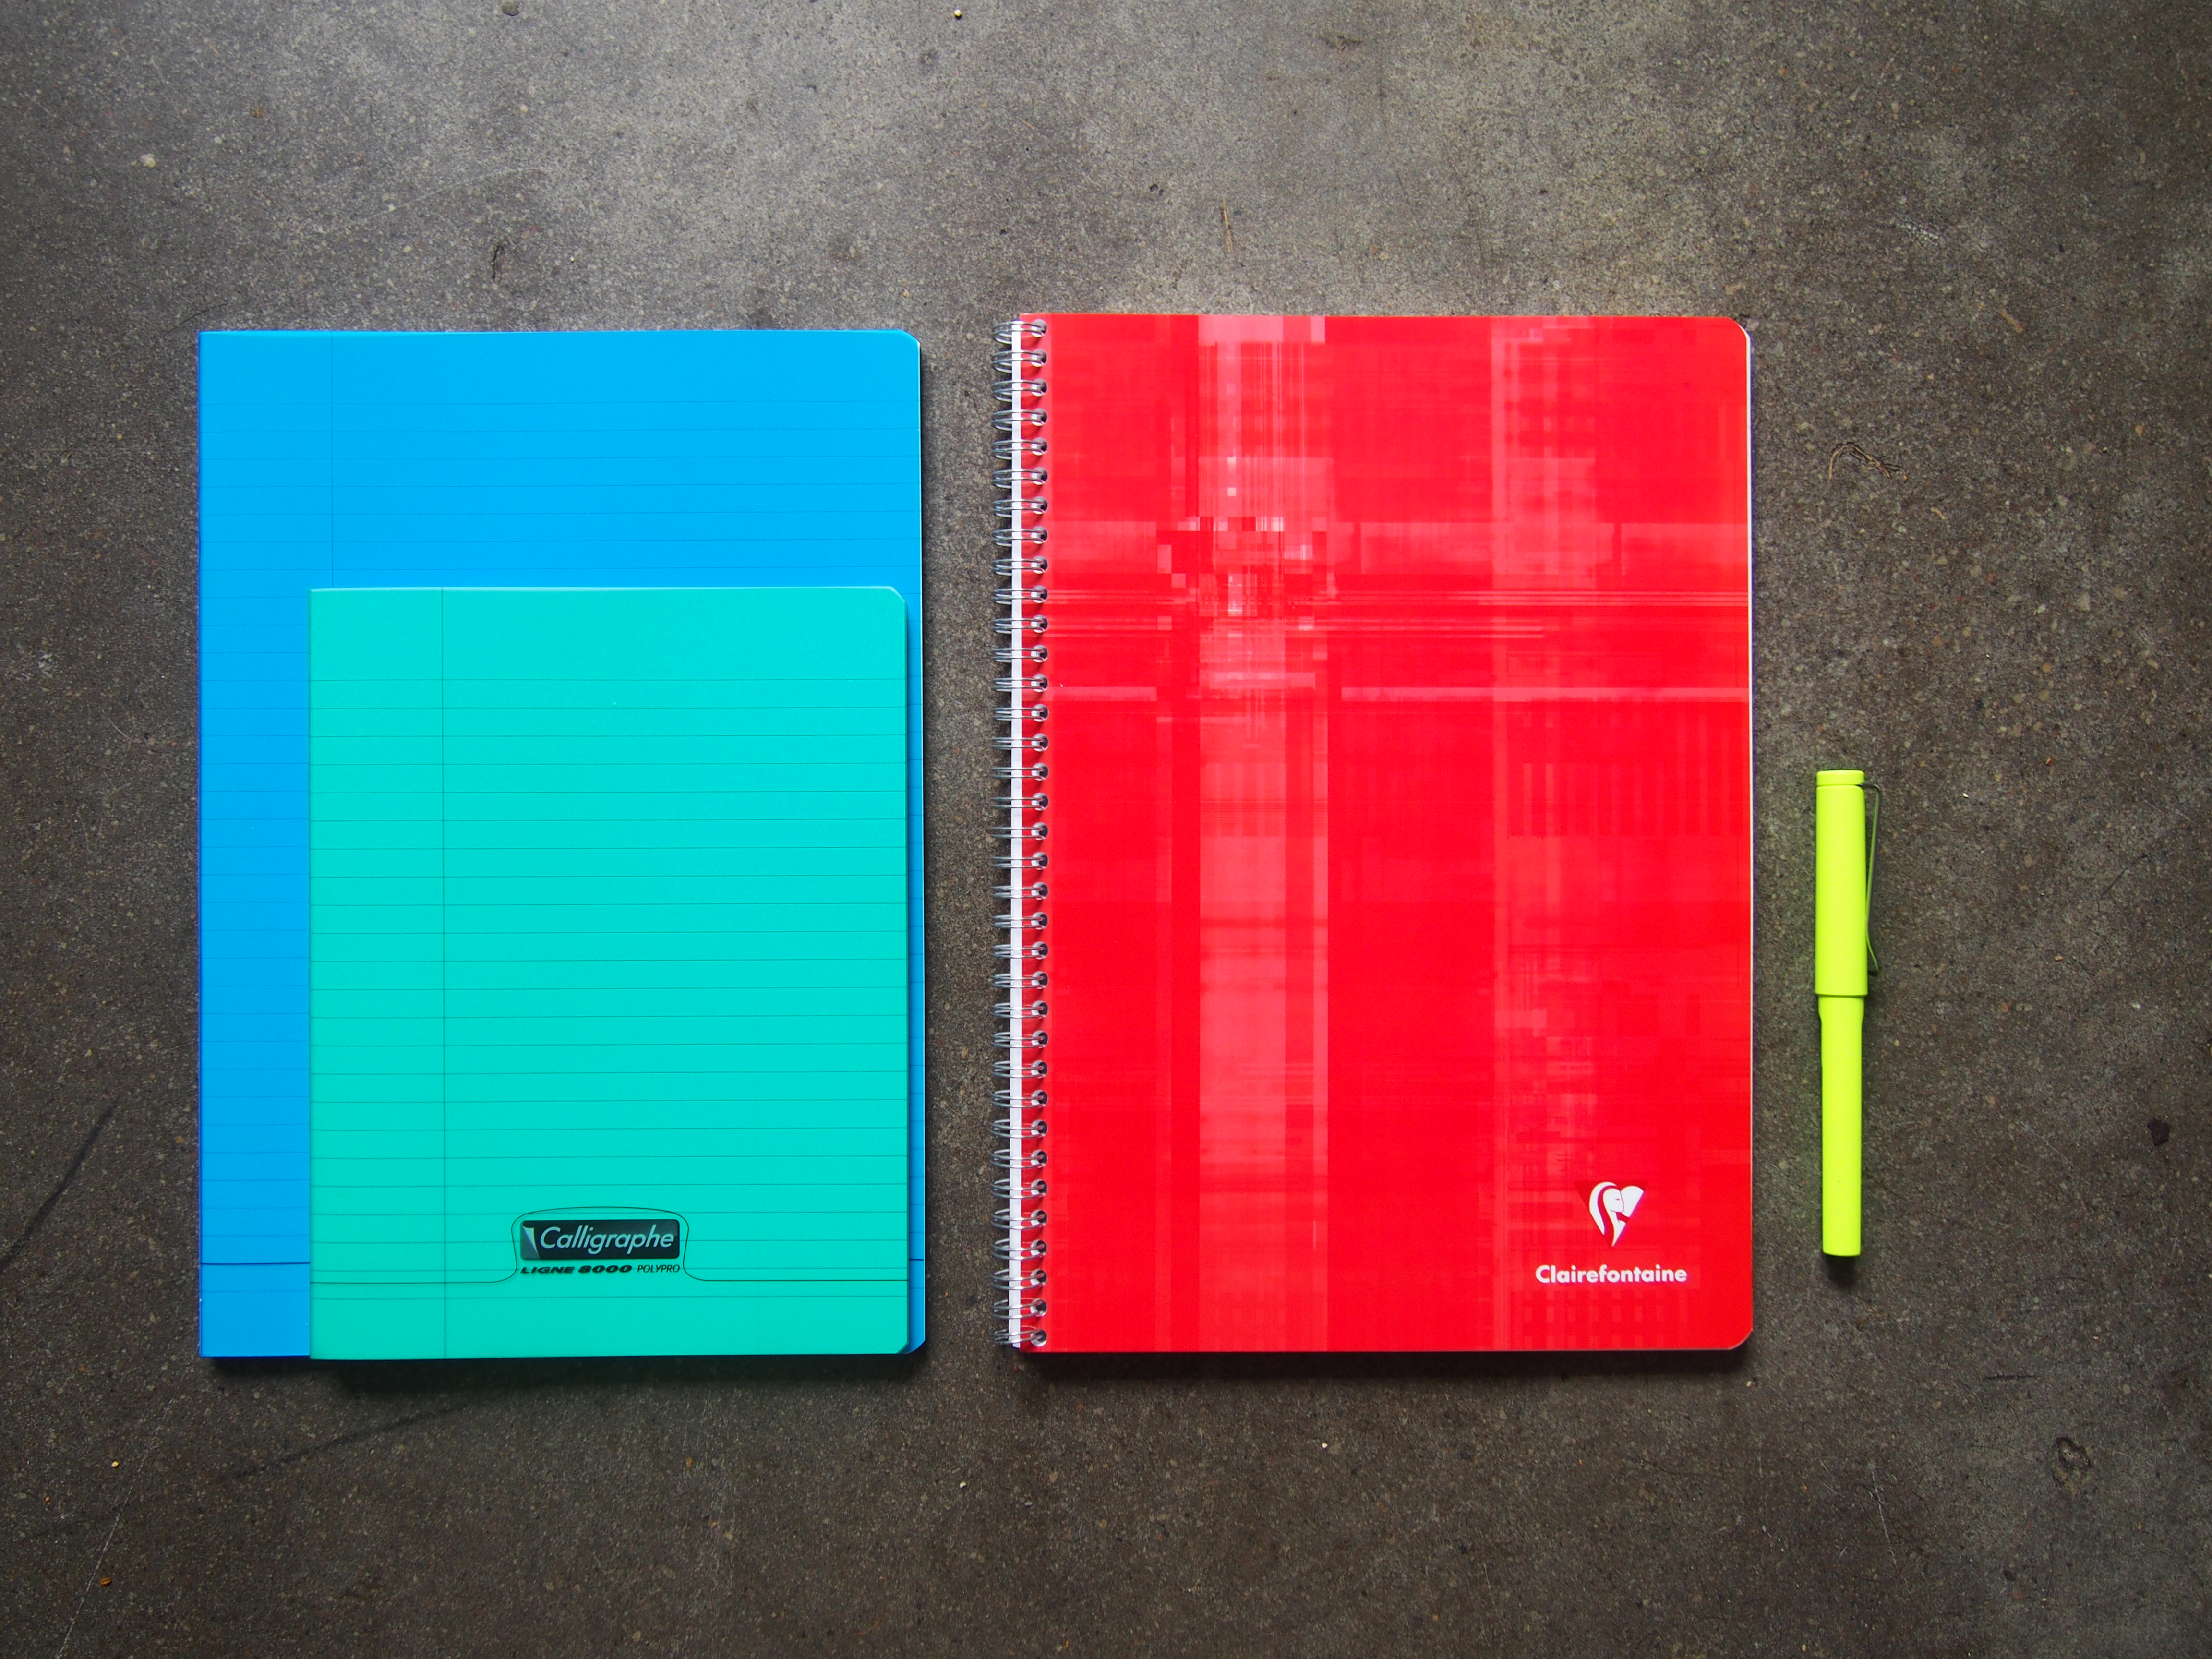 Clairefontaine Spiral bound notebooks 90gsm white paper Toronto Canada Wonder Pens Blog wonderpens.ca